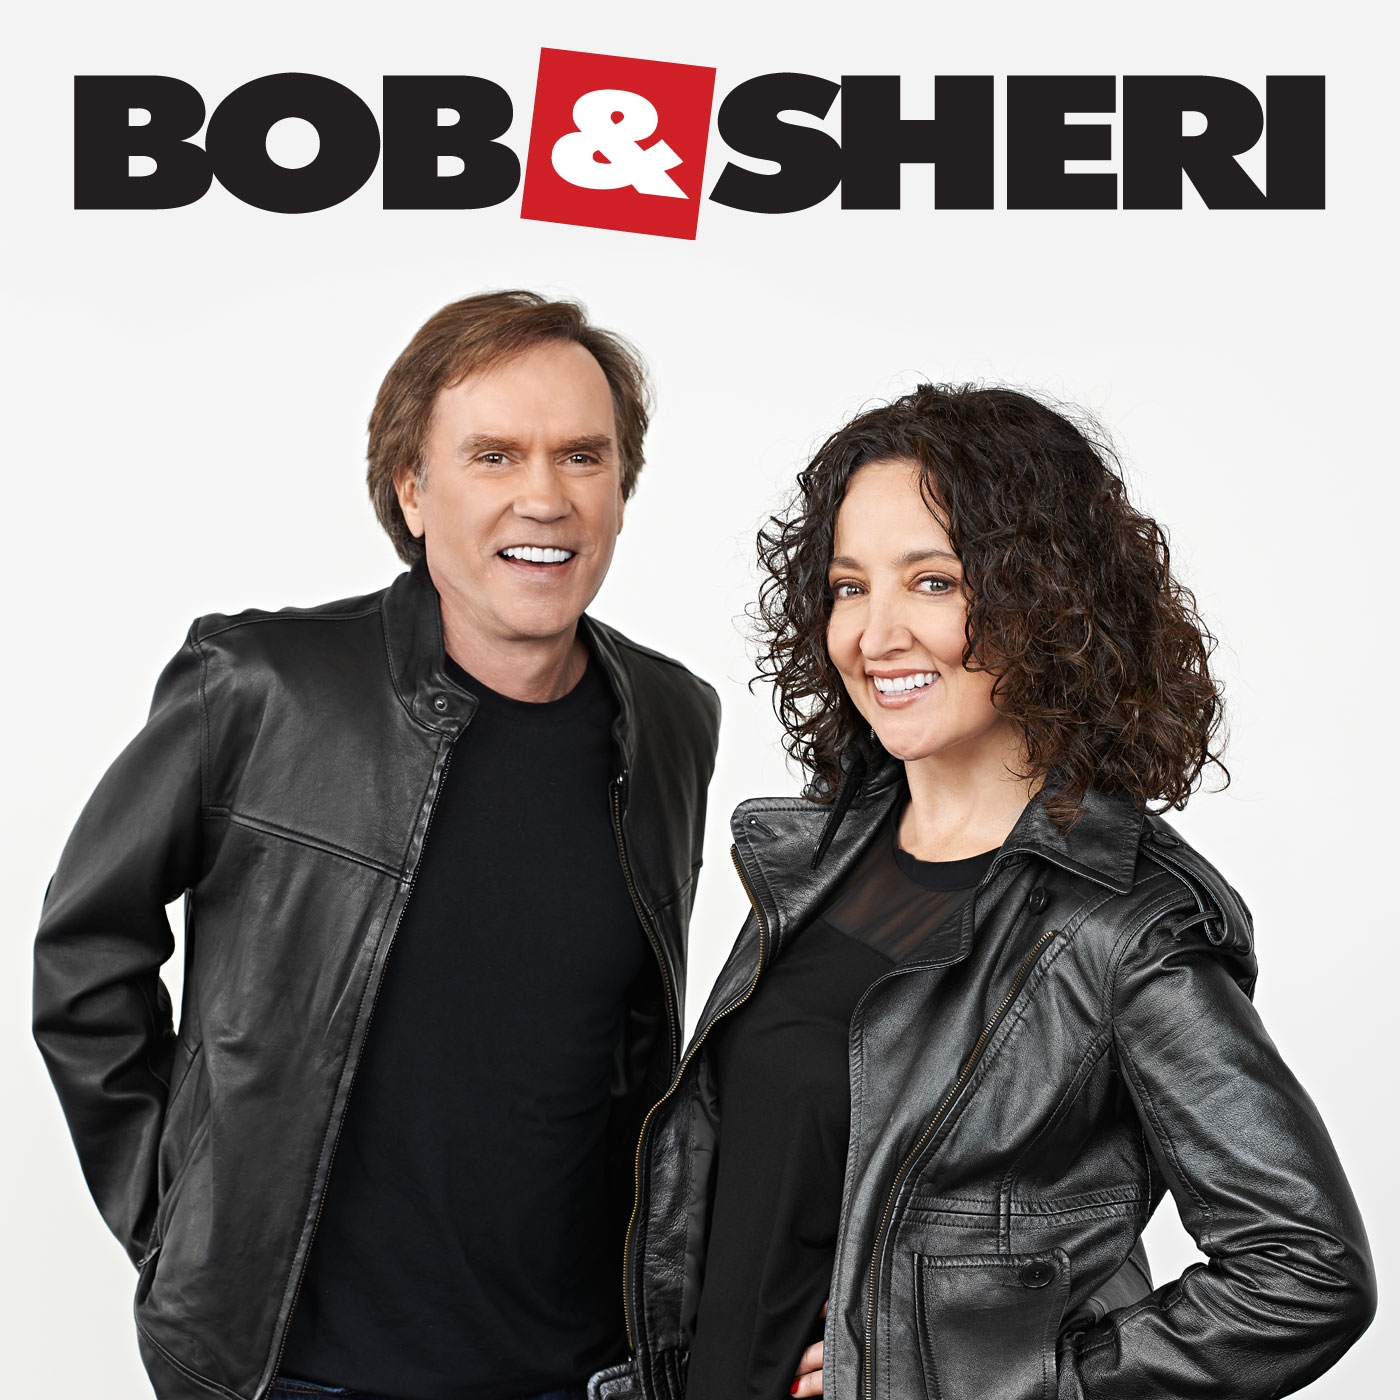 Mornings - Bob & Sheri